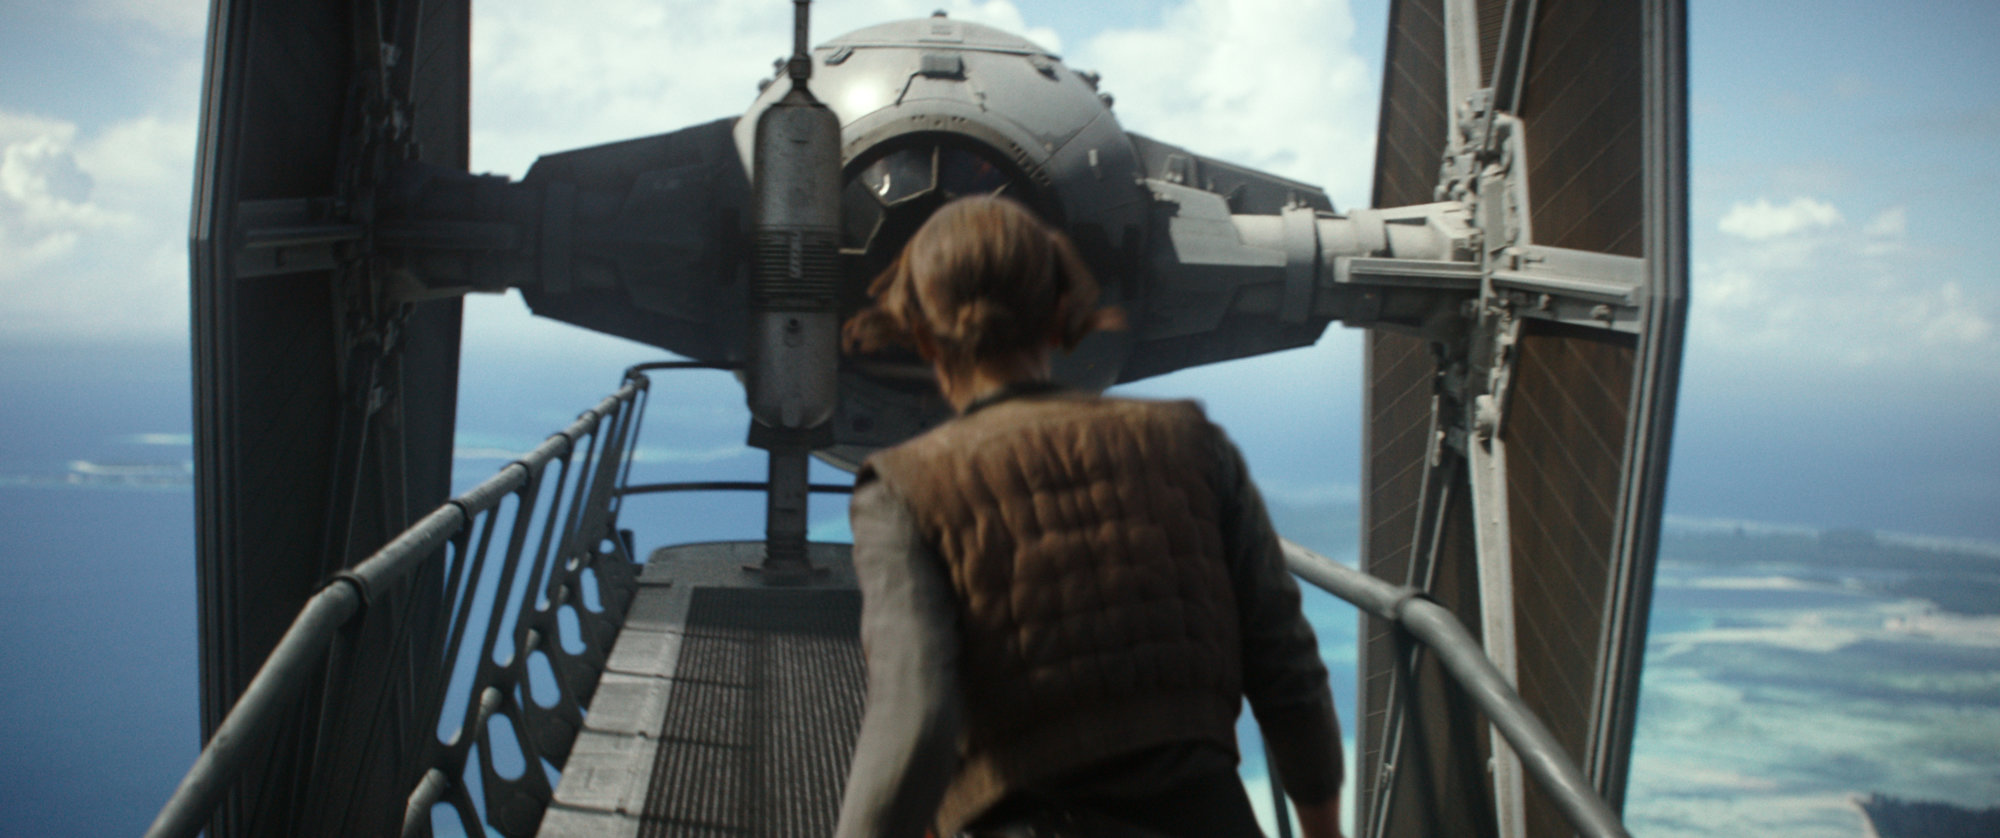 rogue one: the ultimate visual guide Scarif Citadel Jyn TIE